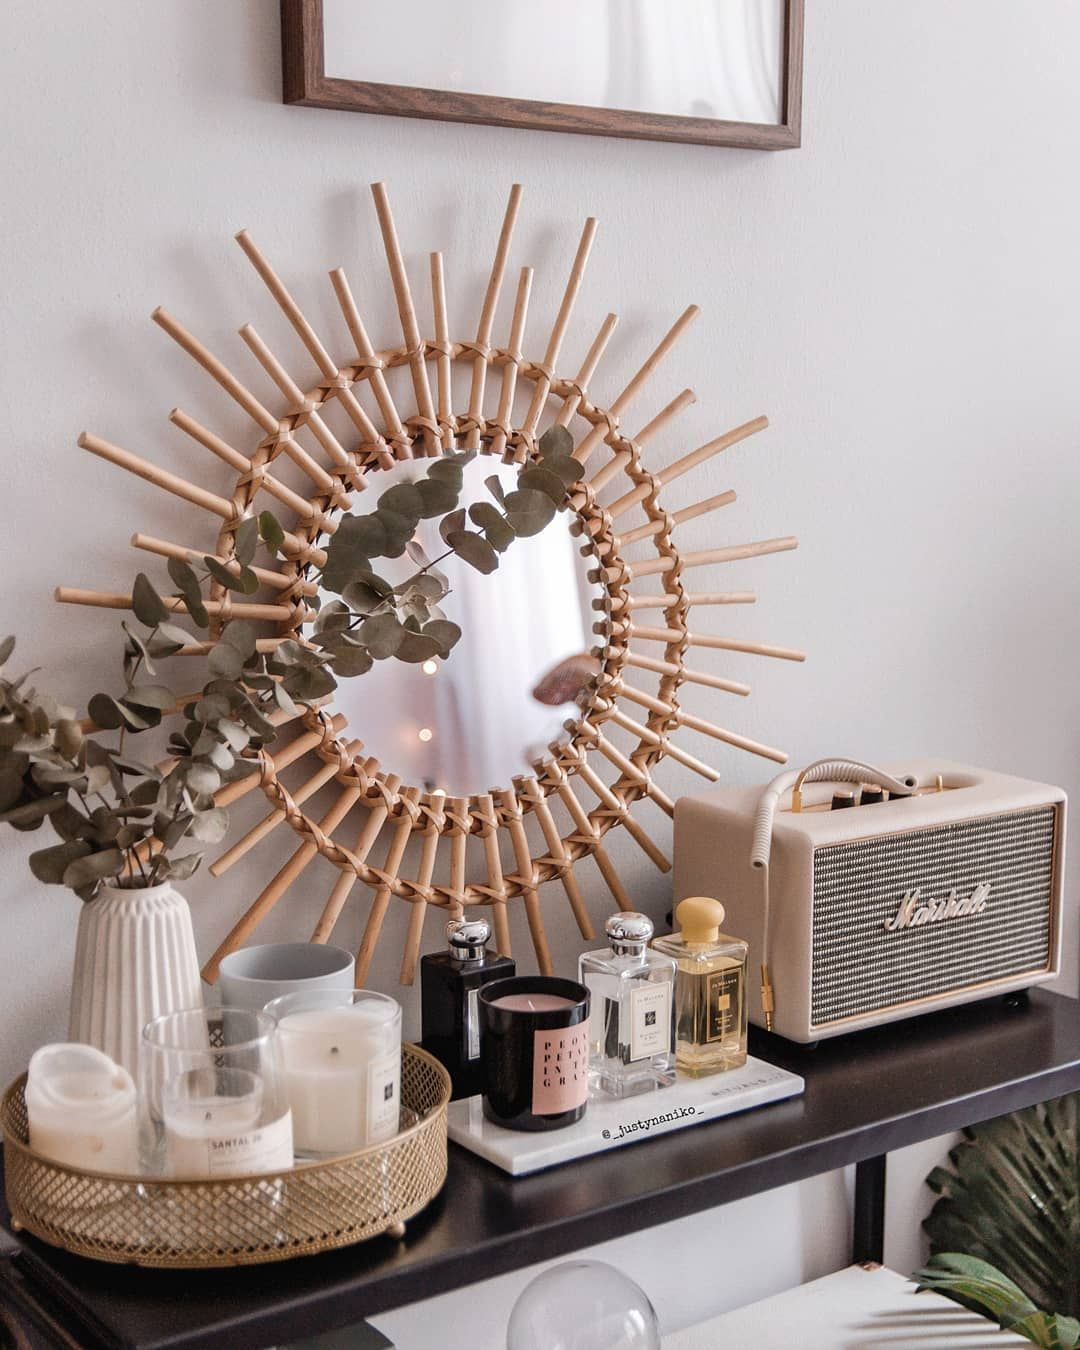 15 Bohemian Mirrors With Boho Style